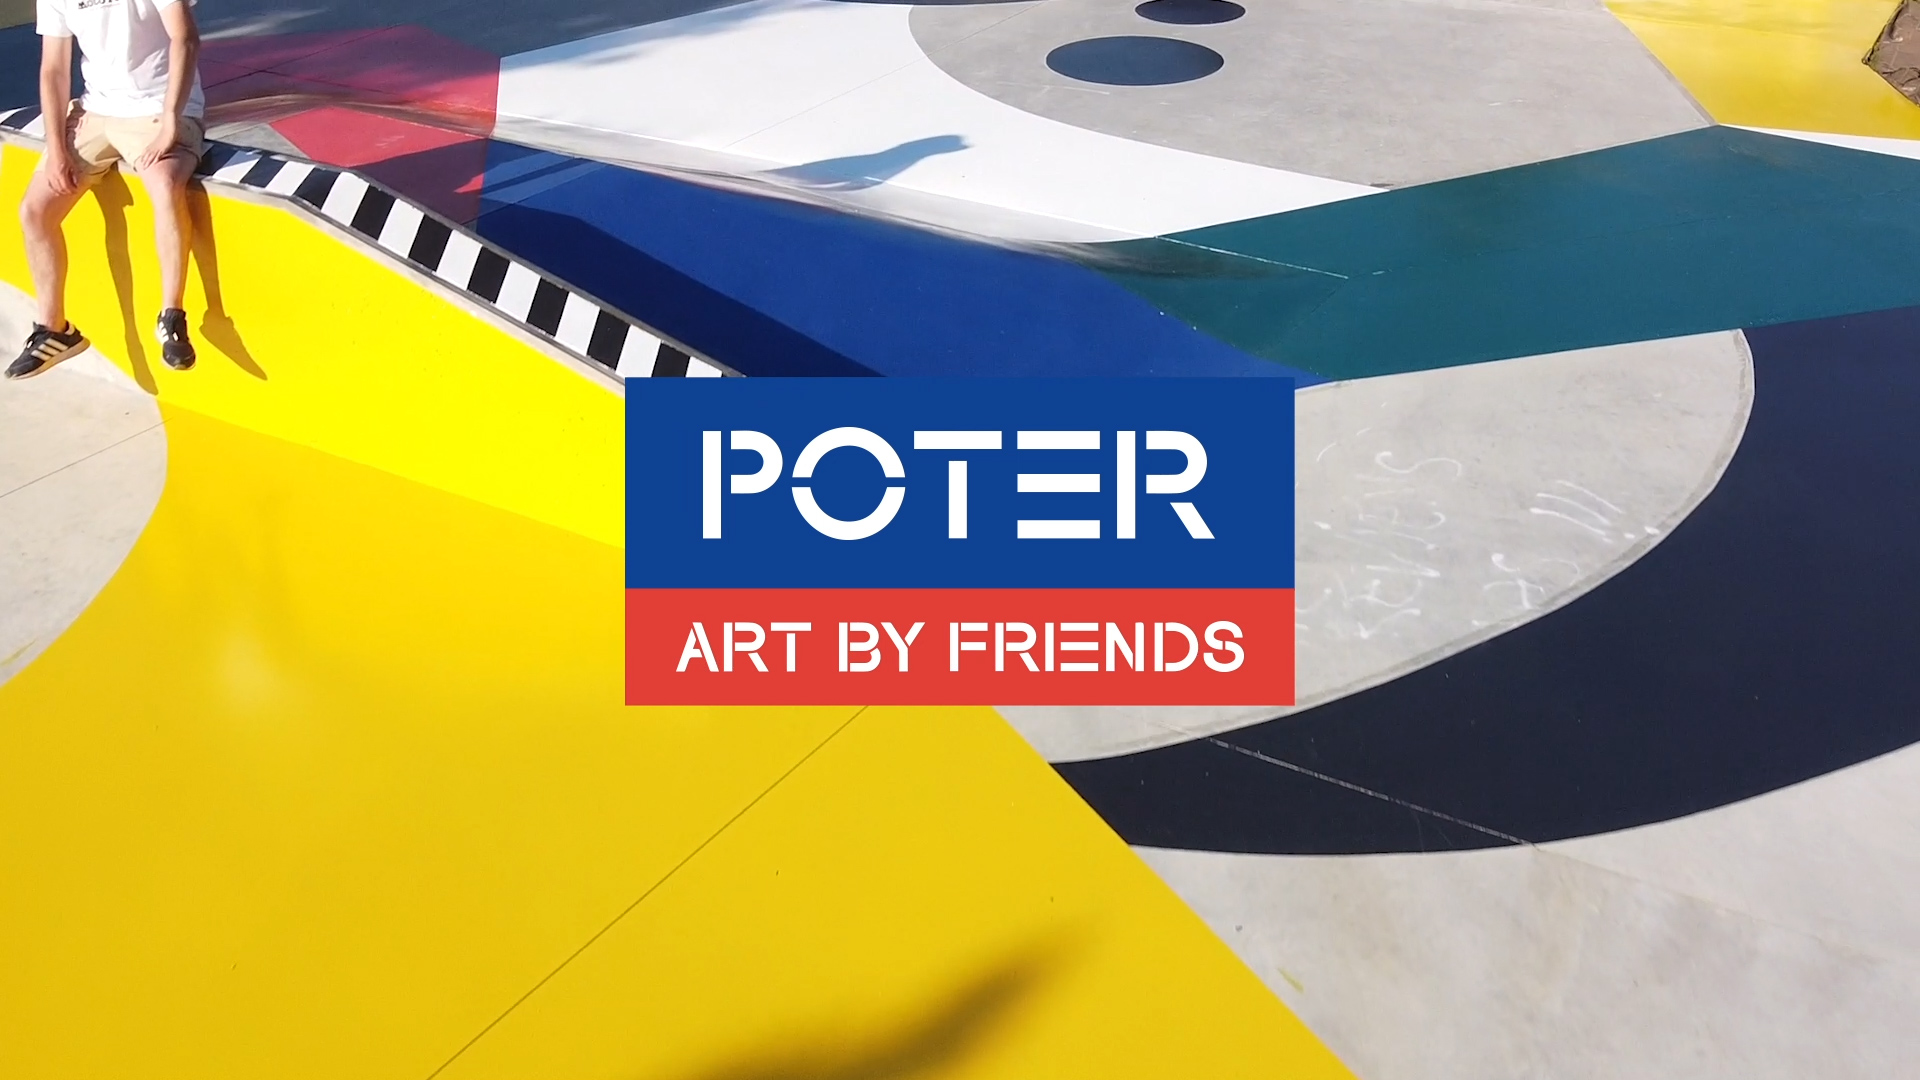 Poter – Art by Friends